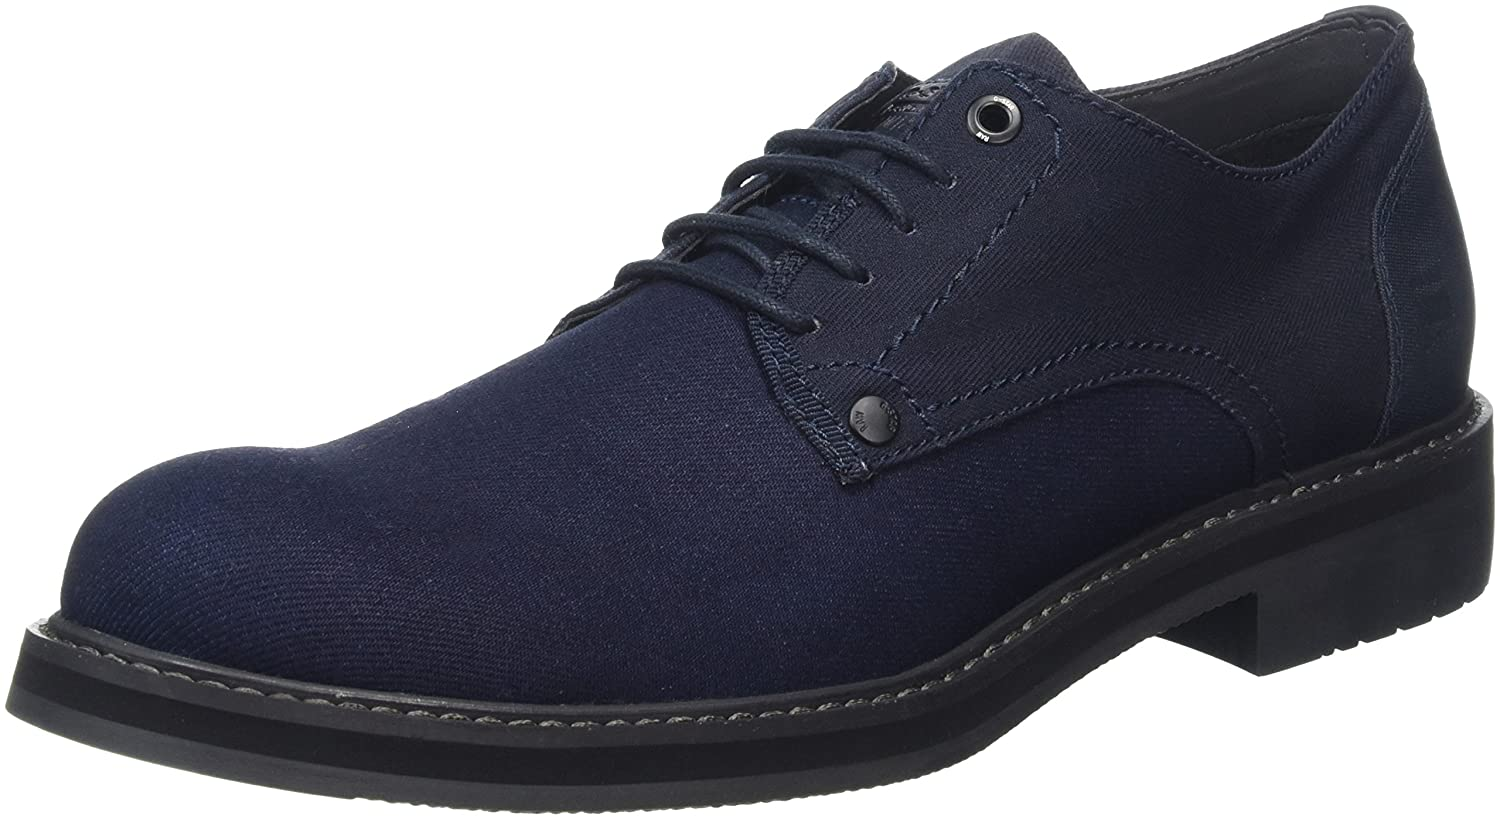 G-STAR RAW Warth Denim, Zapatos de Cordones Derby para Hombre